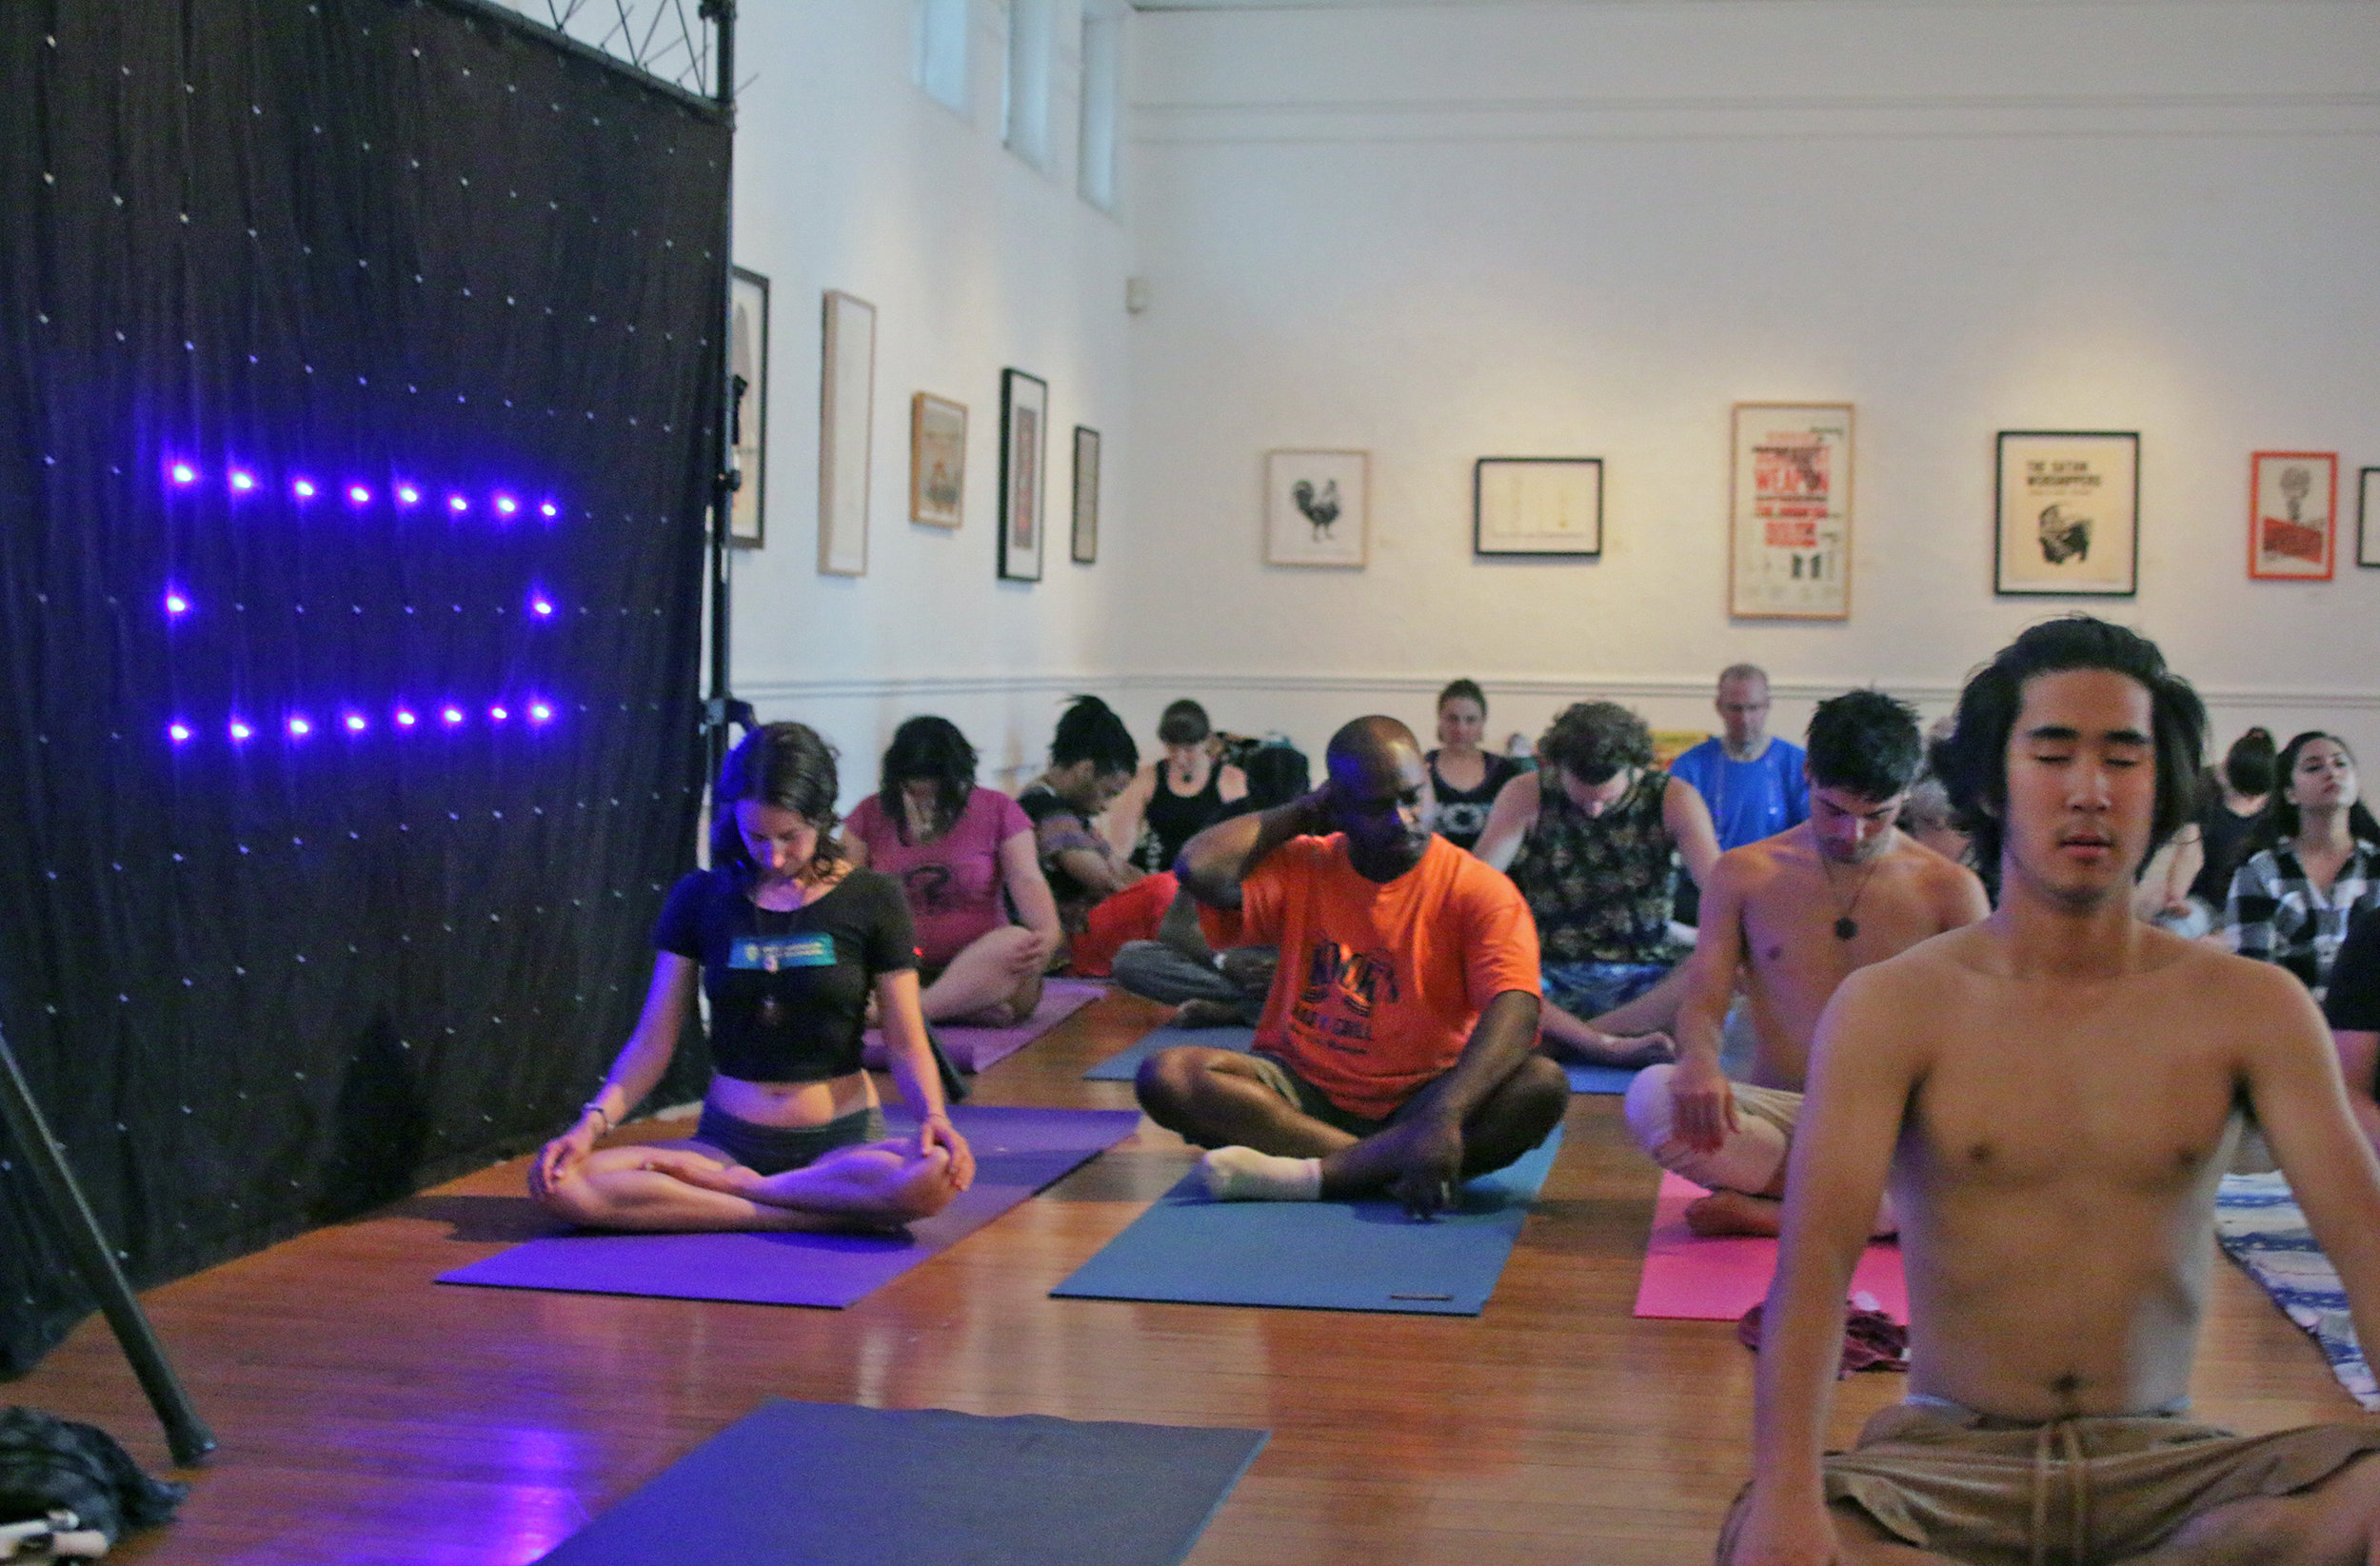 The closing Renegade Yoga class at Vibrant Dawn on 8/16/2016. (Photo by Eric Rentschler of Eluminous Studios.)